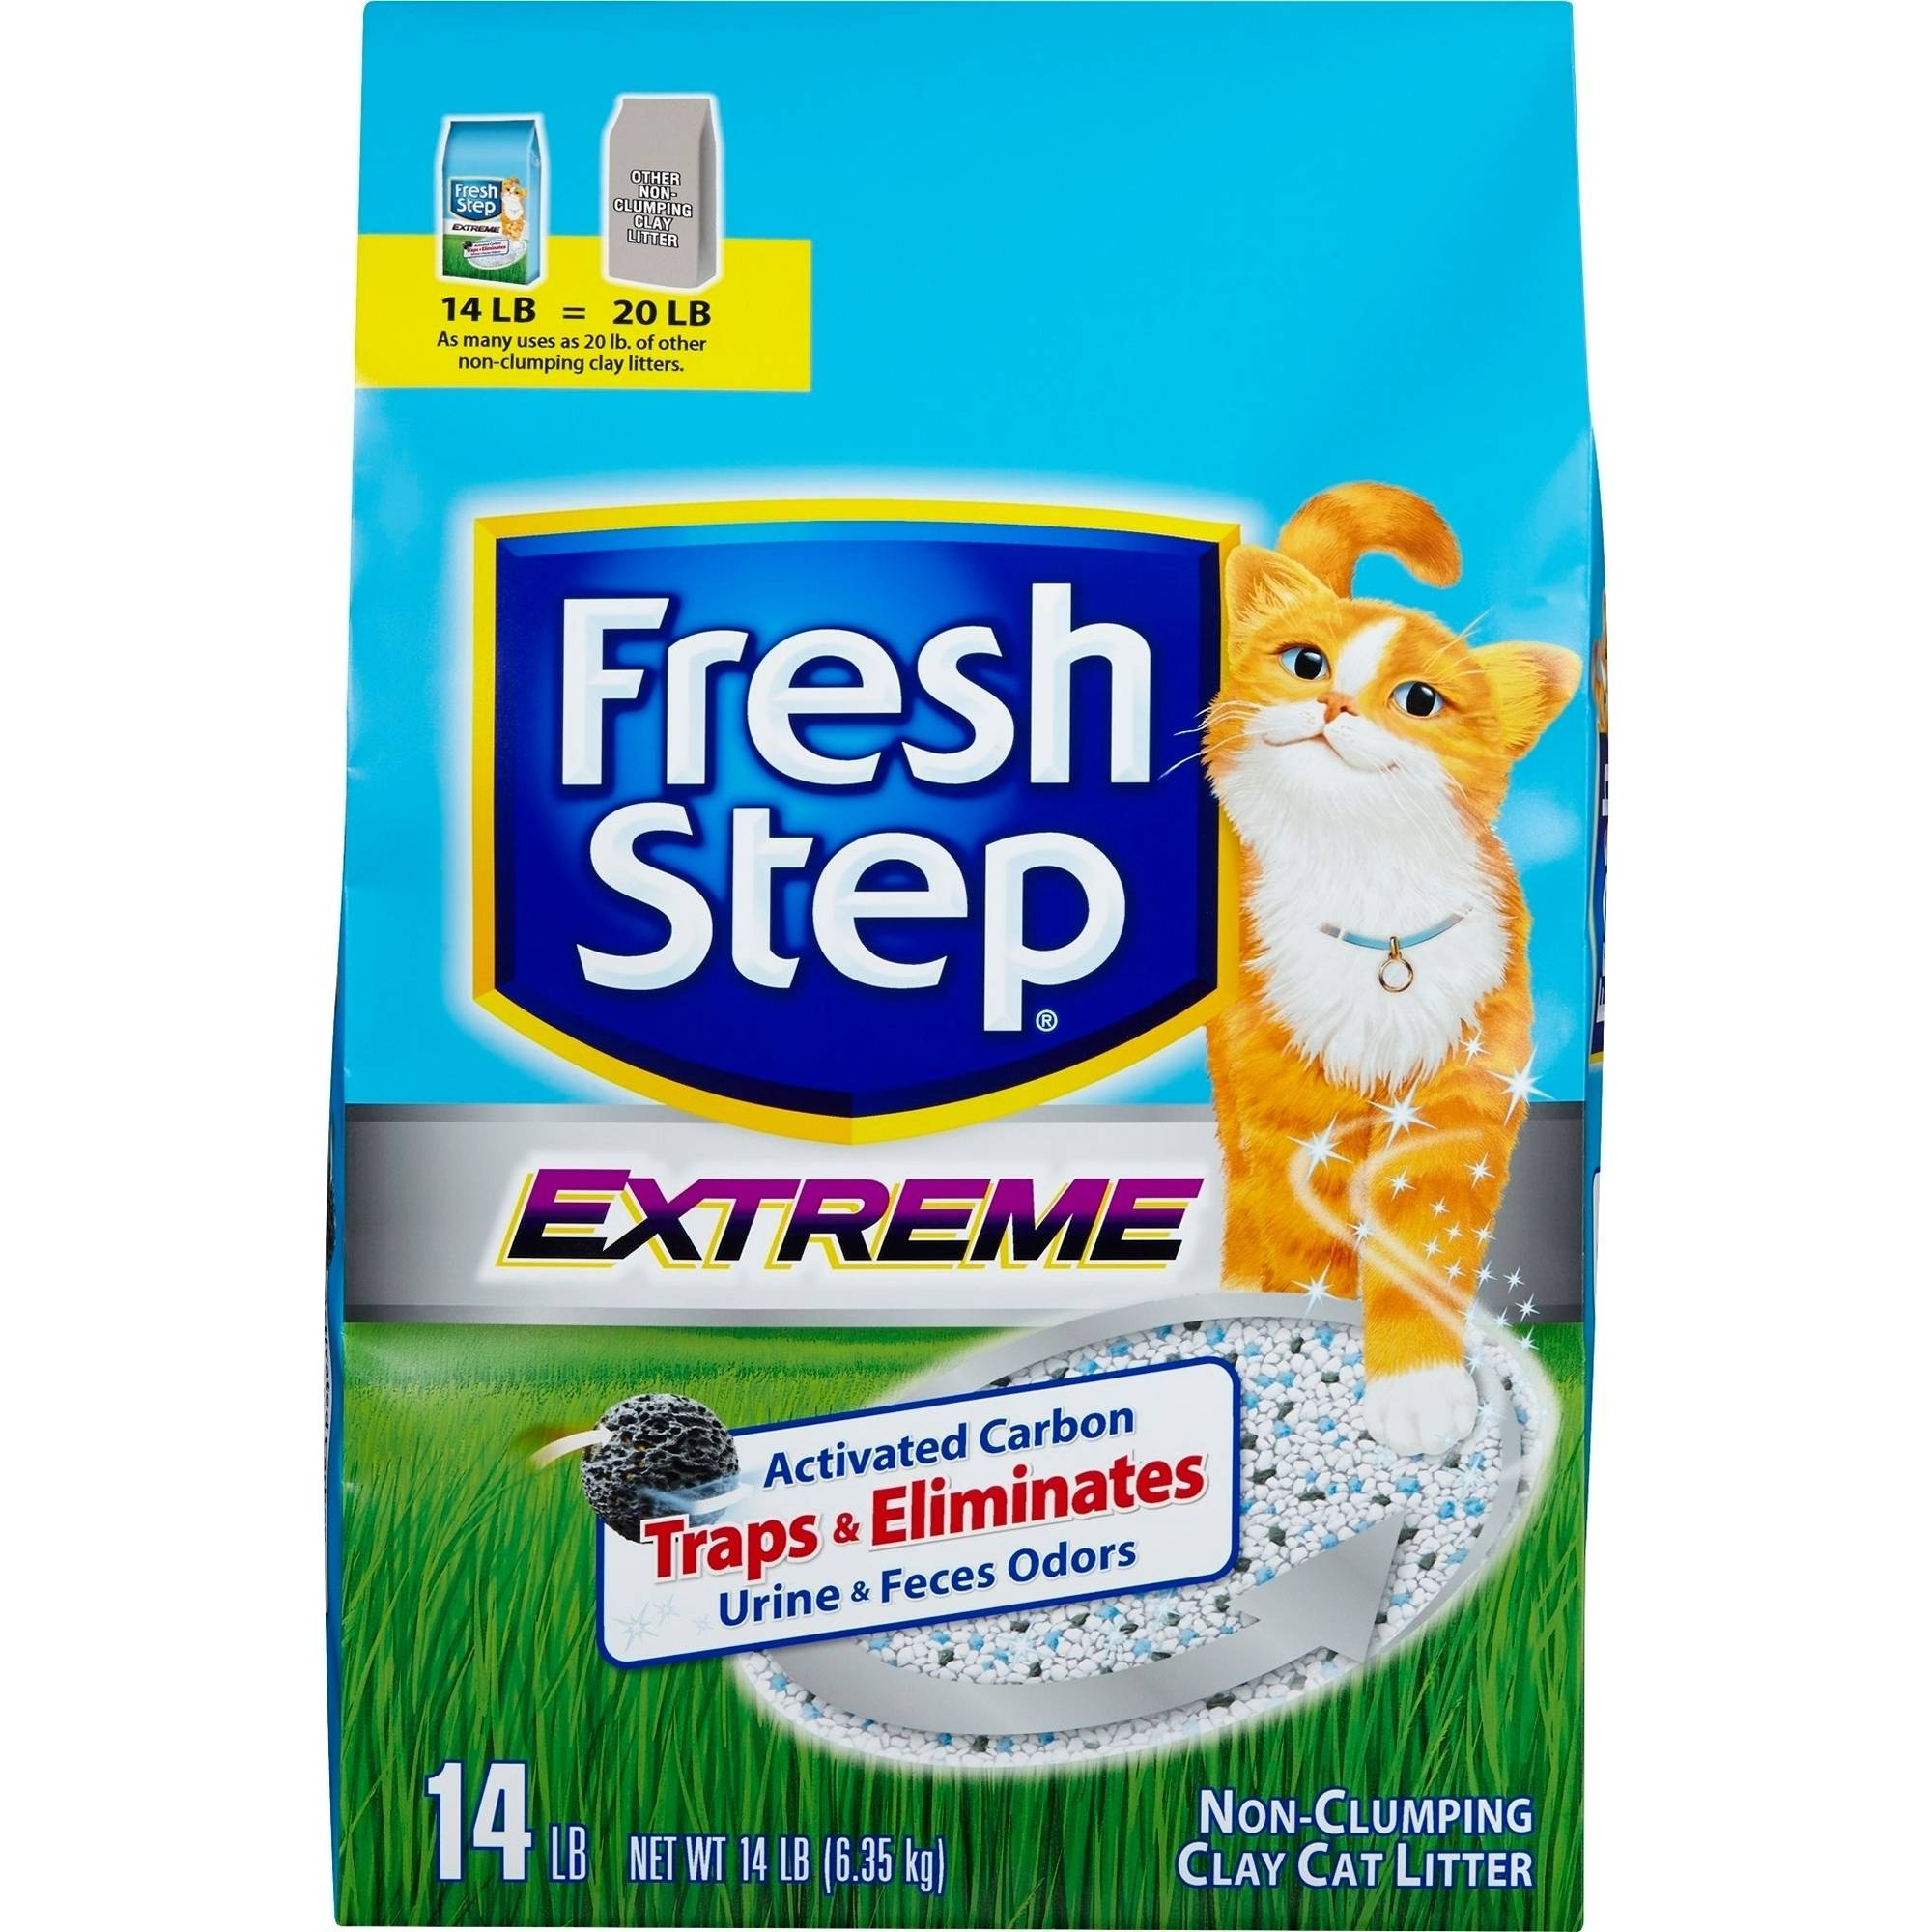 Fresh Step Extreme, Clay Cat Litter, 14 lb Bag